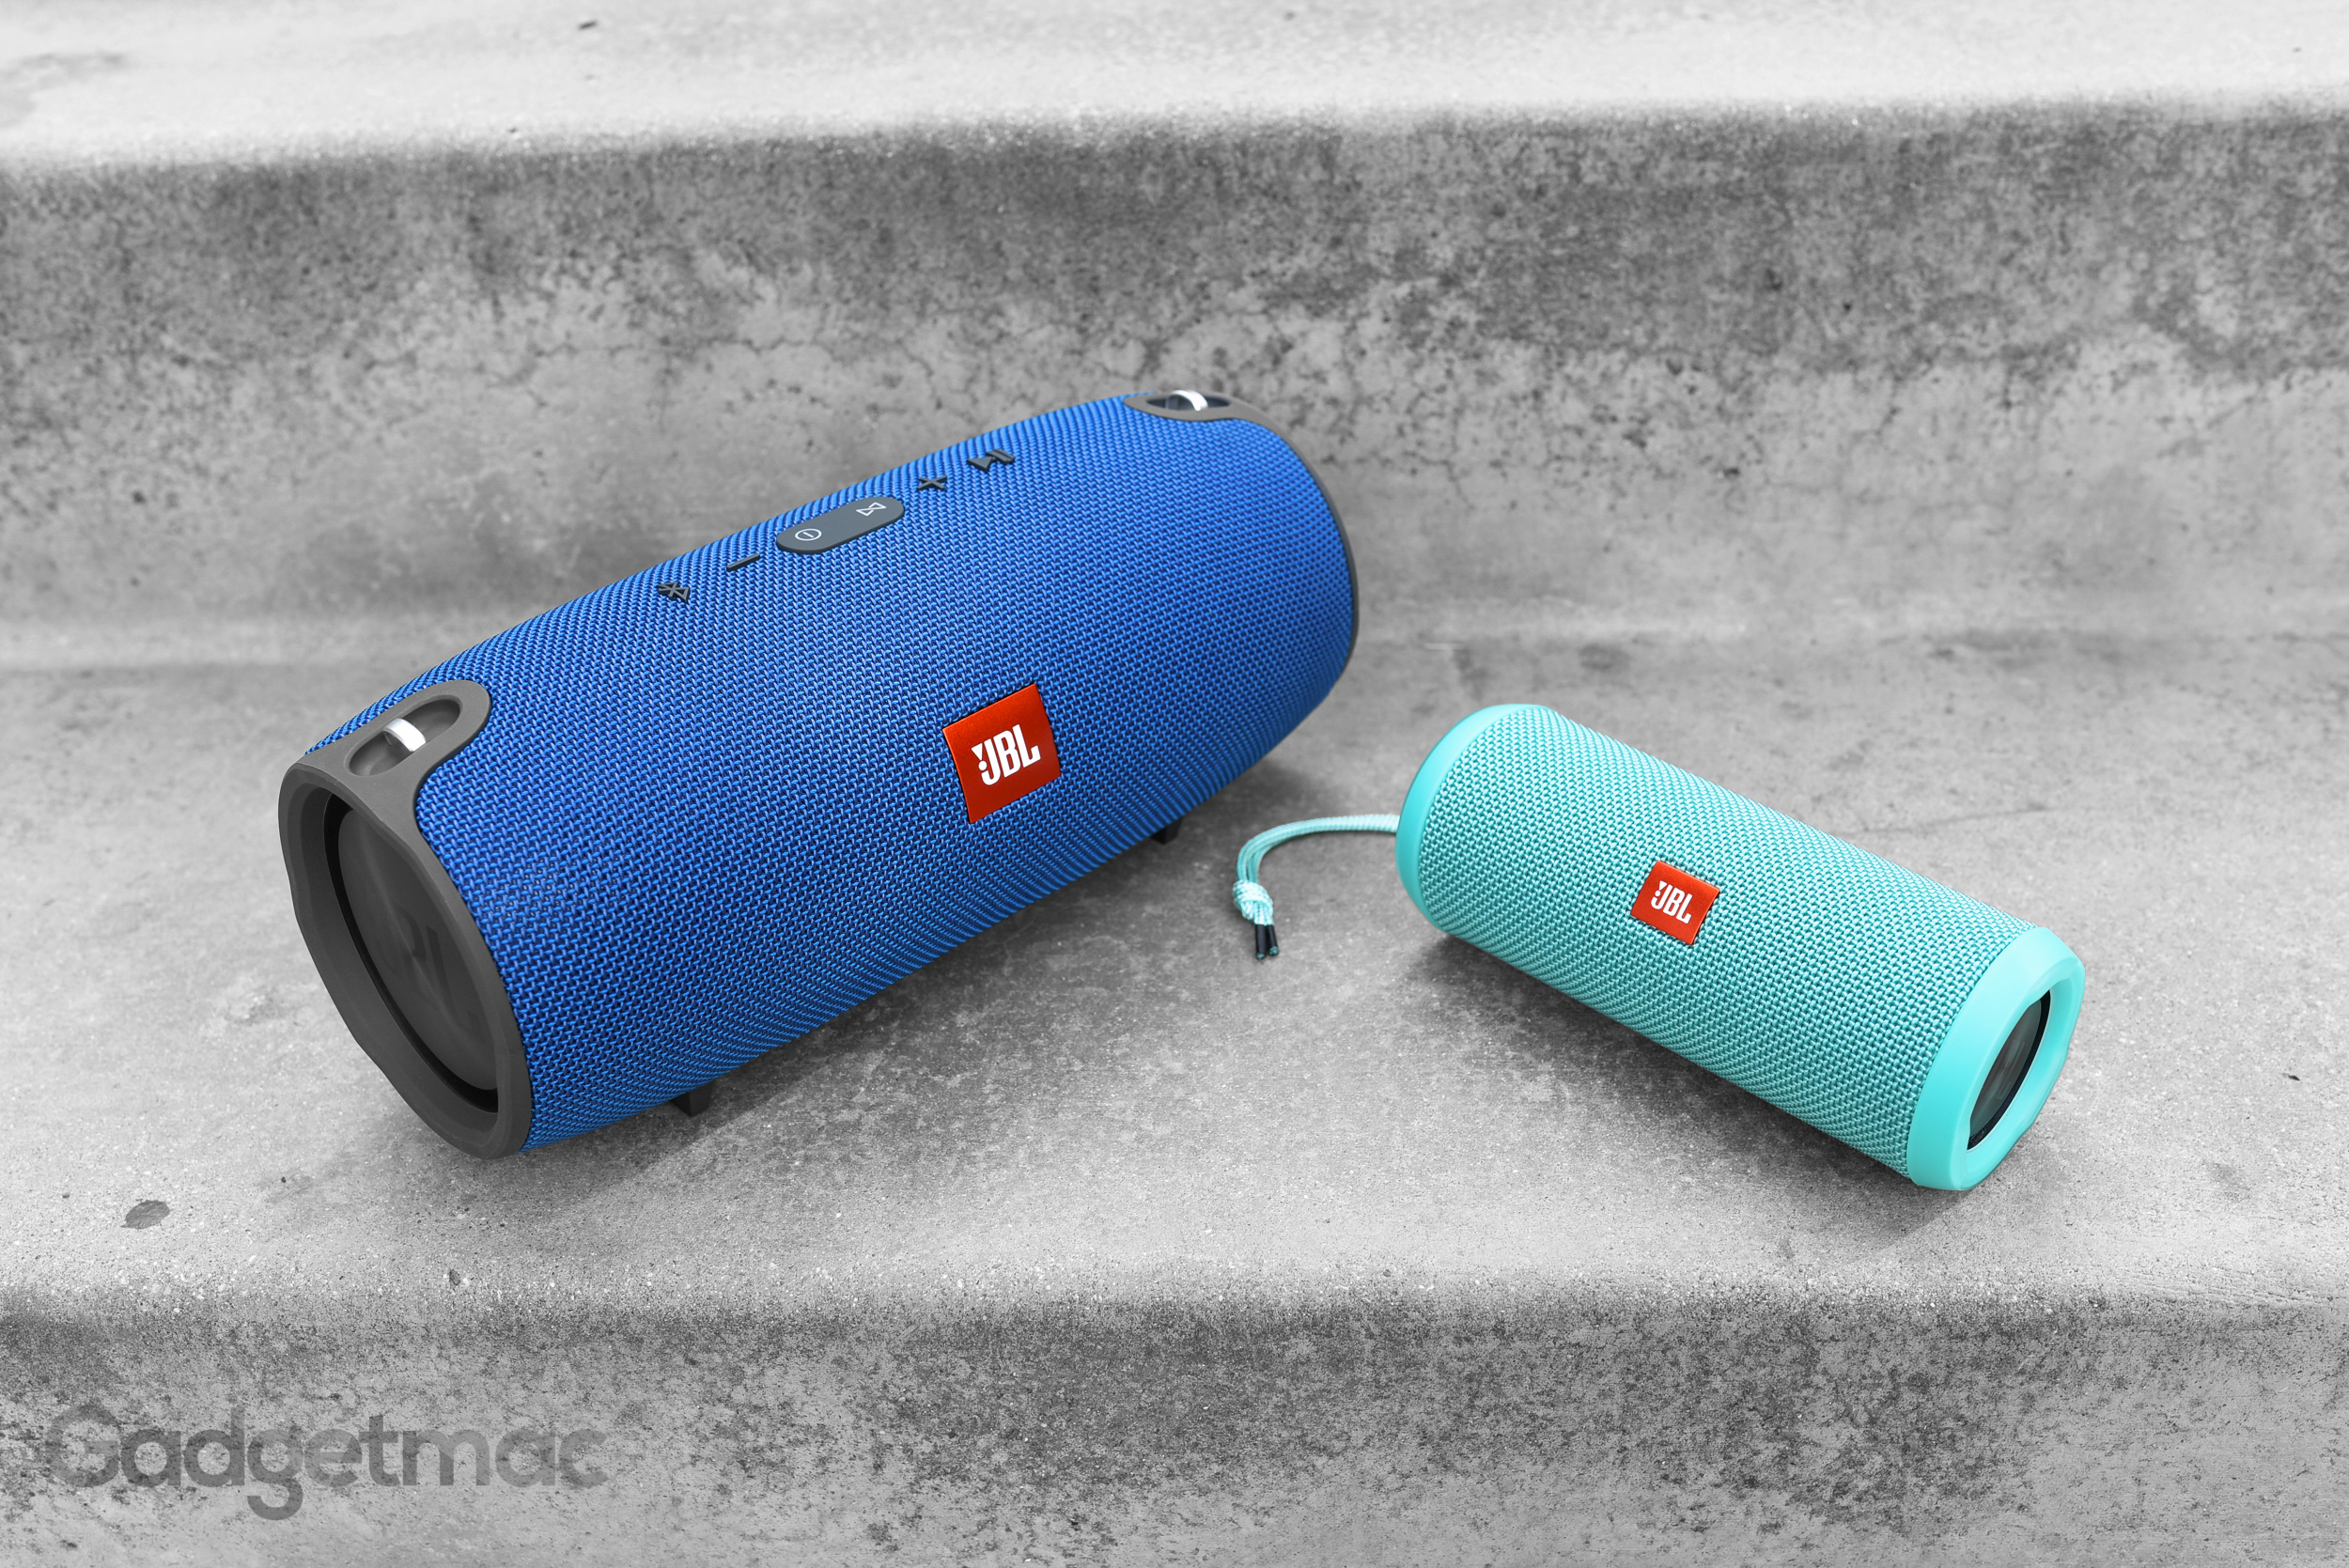 JBL Flip 3 Portable Wireless Speaker Review — Gadgetmac